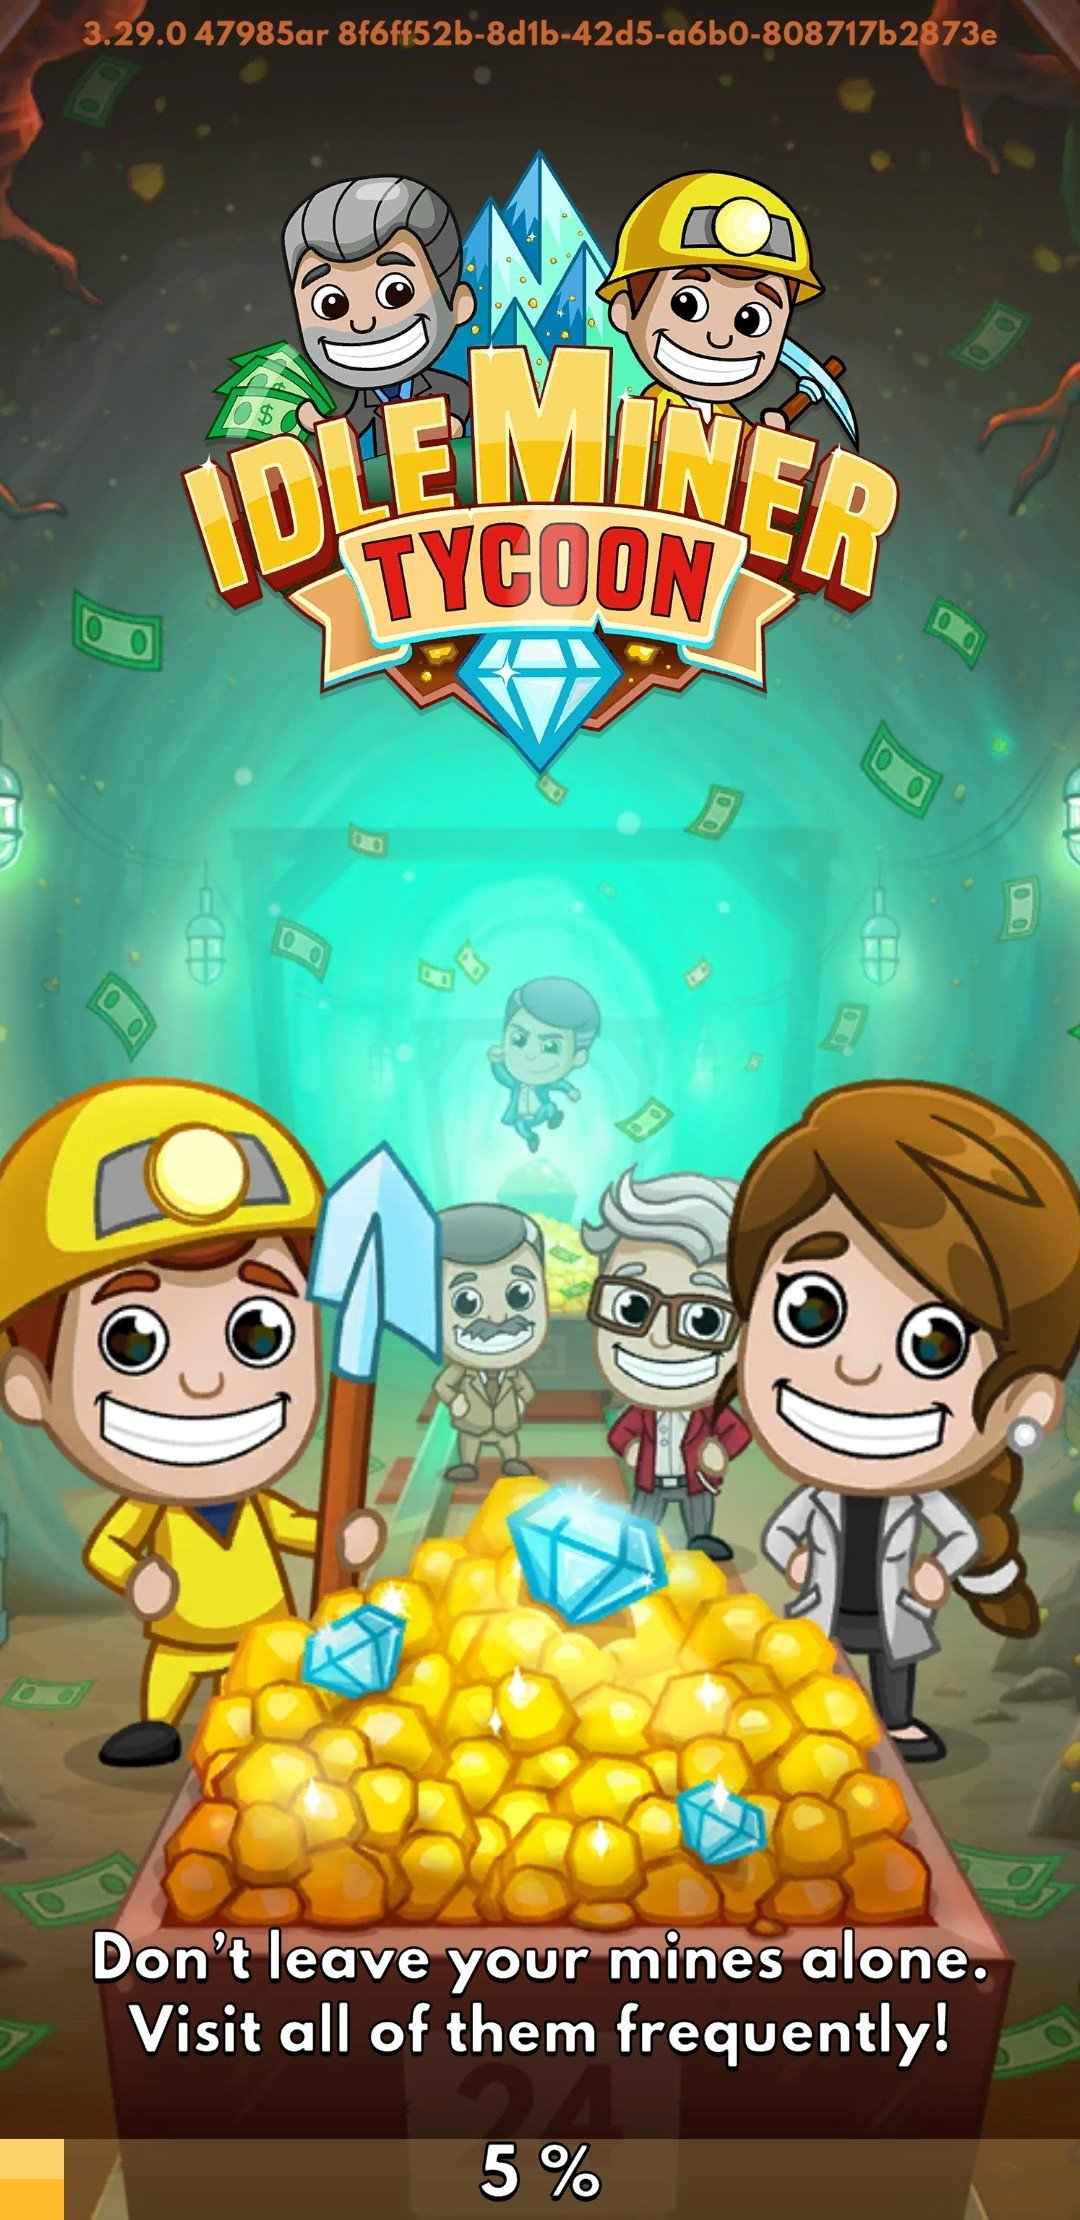 Idle Miner Tycoon 2 57 1 - Download for Android APK Free